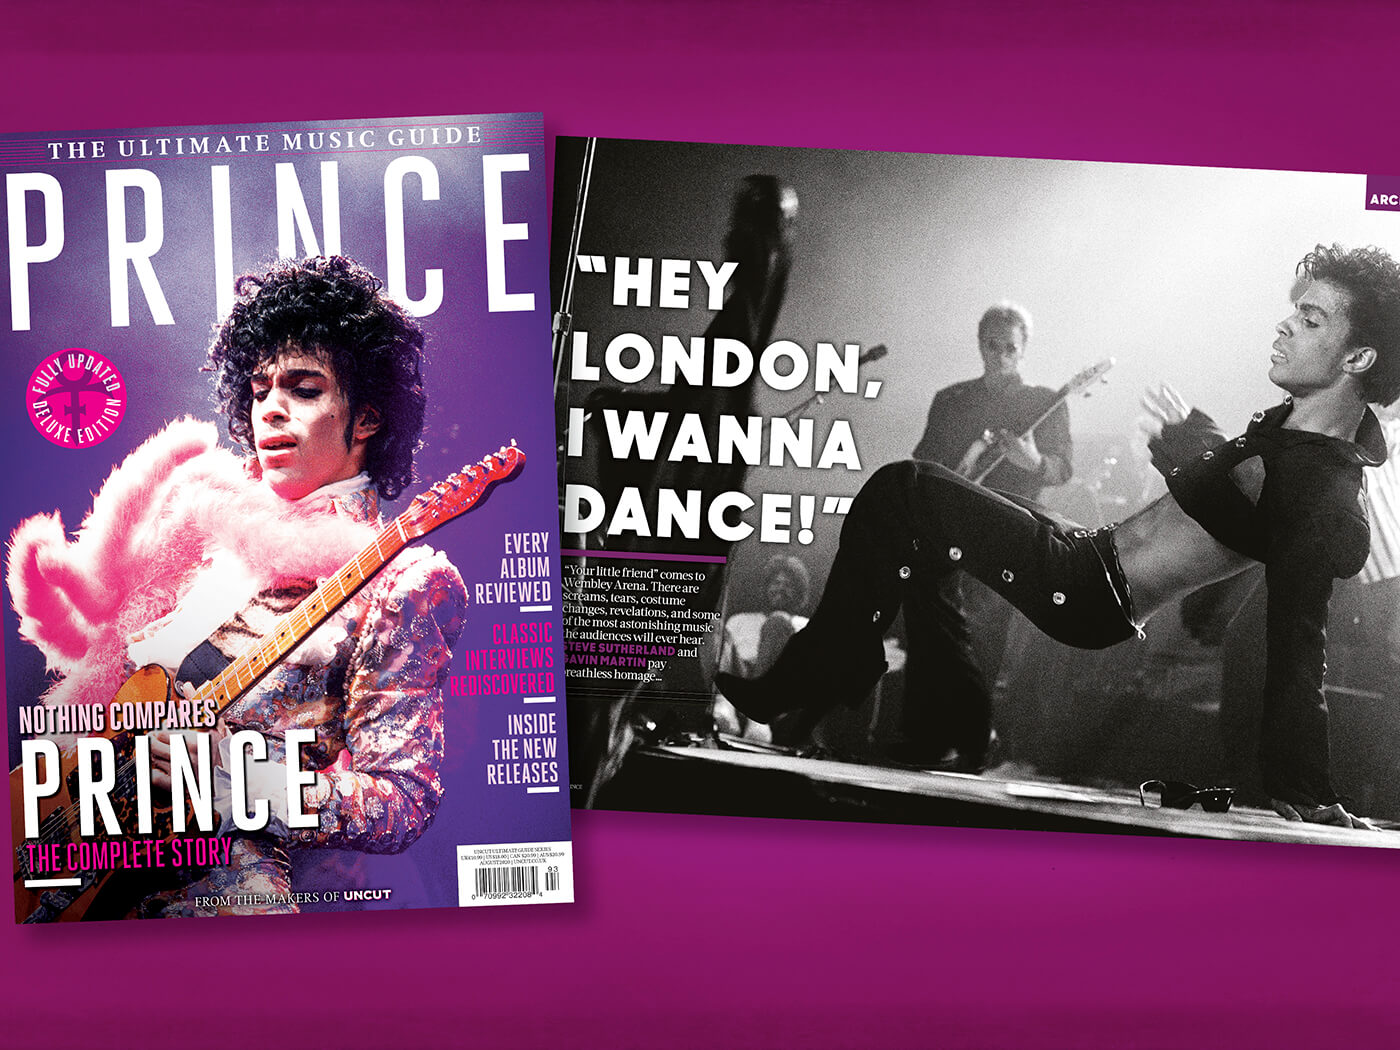 Introducing the Deluxe Ultimate Music Guide to Prince